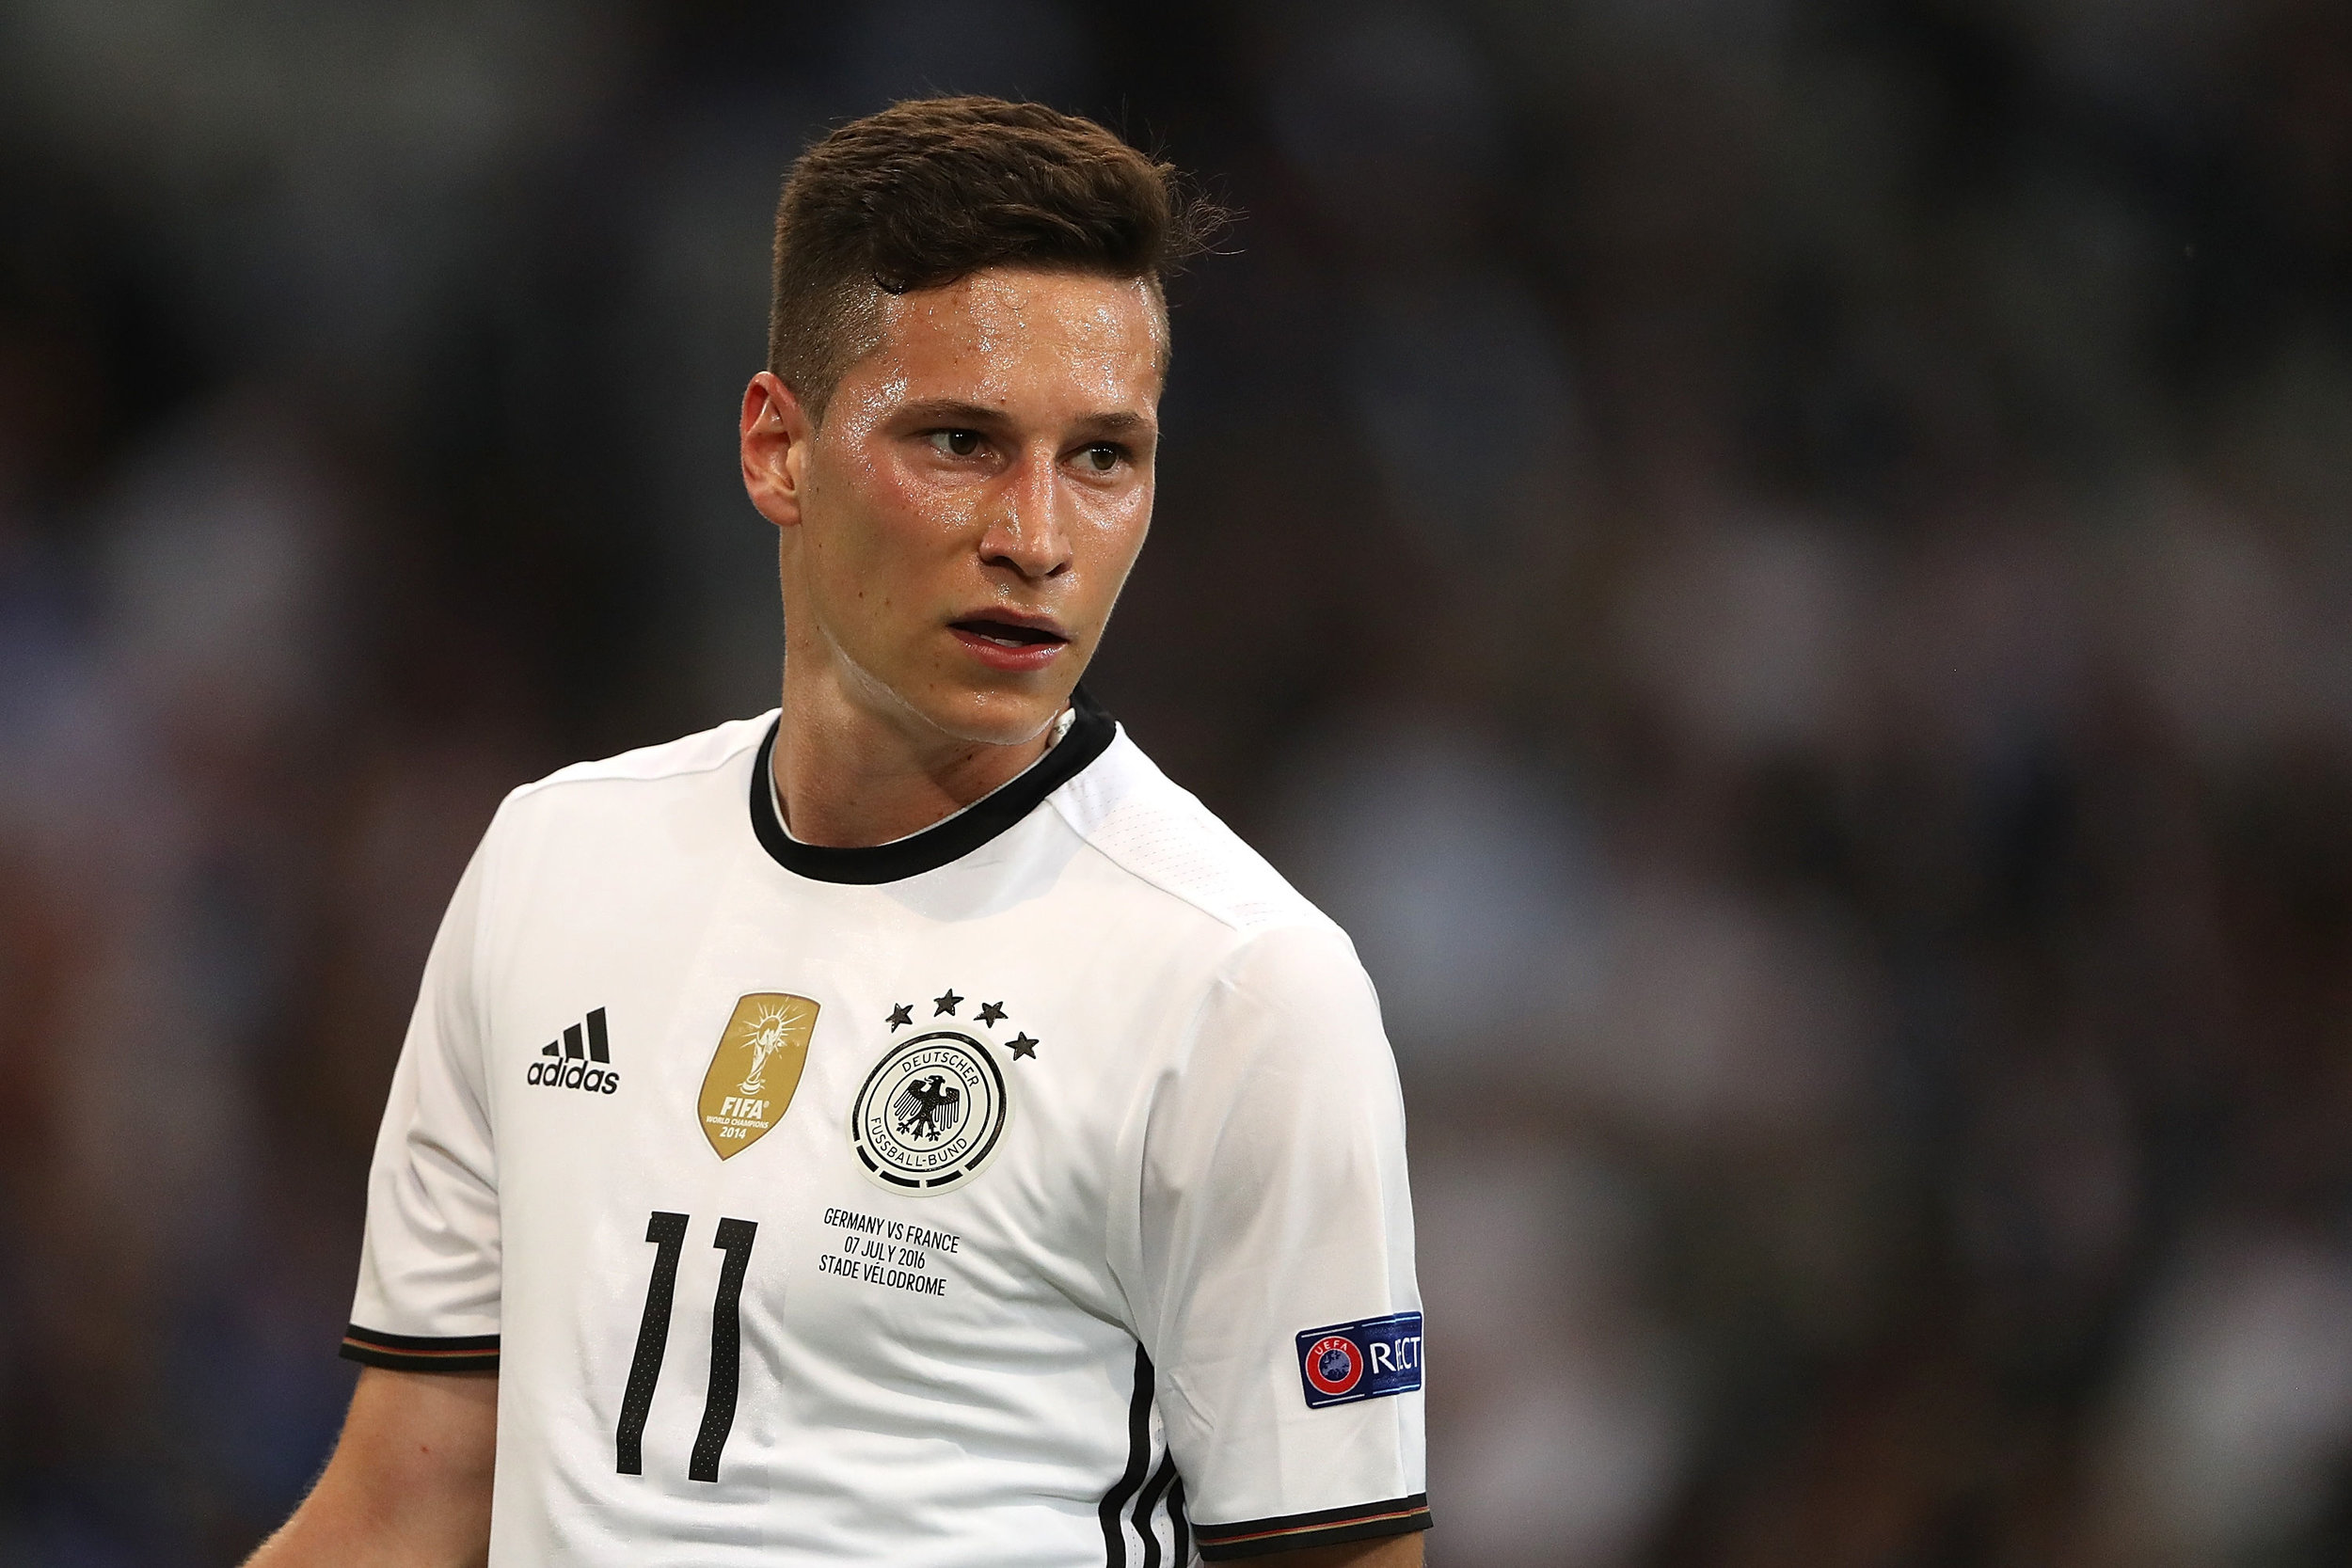 Draxler difficult option Here are more plausible alternatives